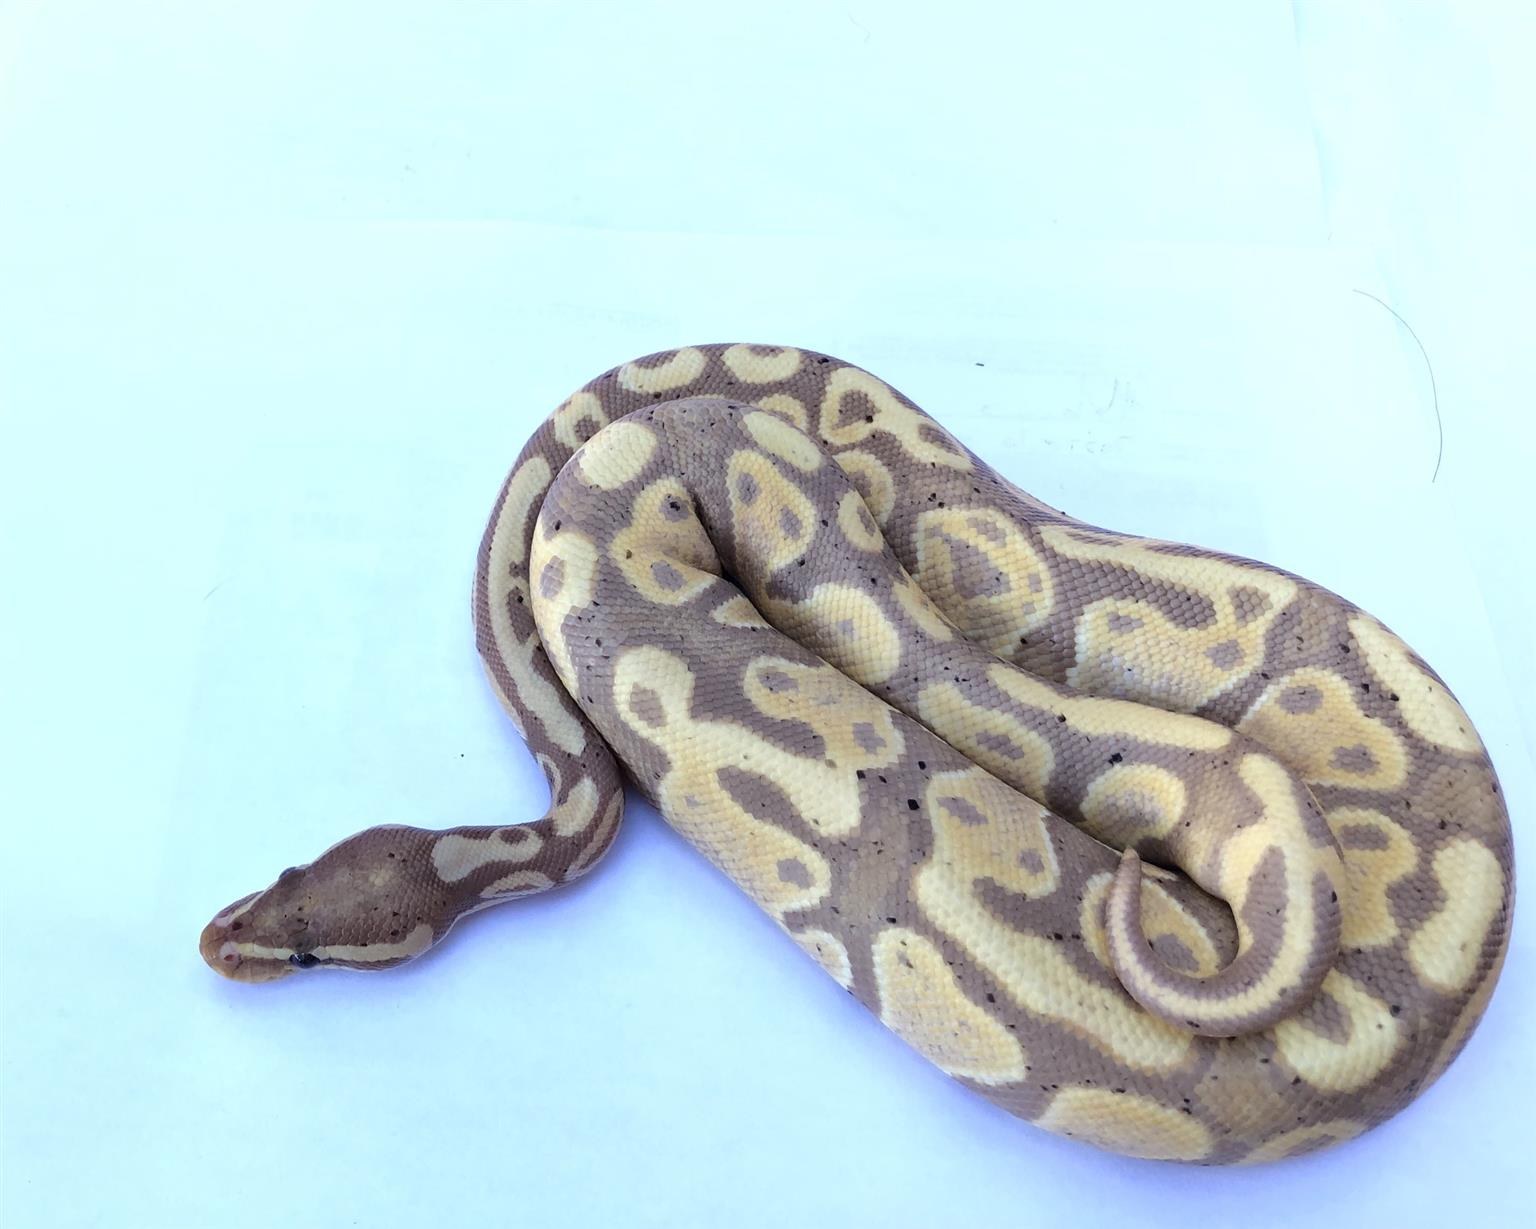 Coral glow possible het pied for sale.